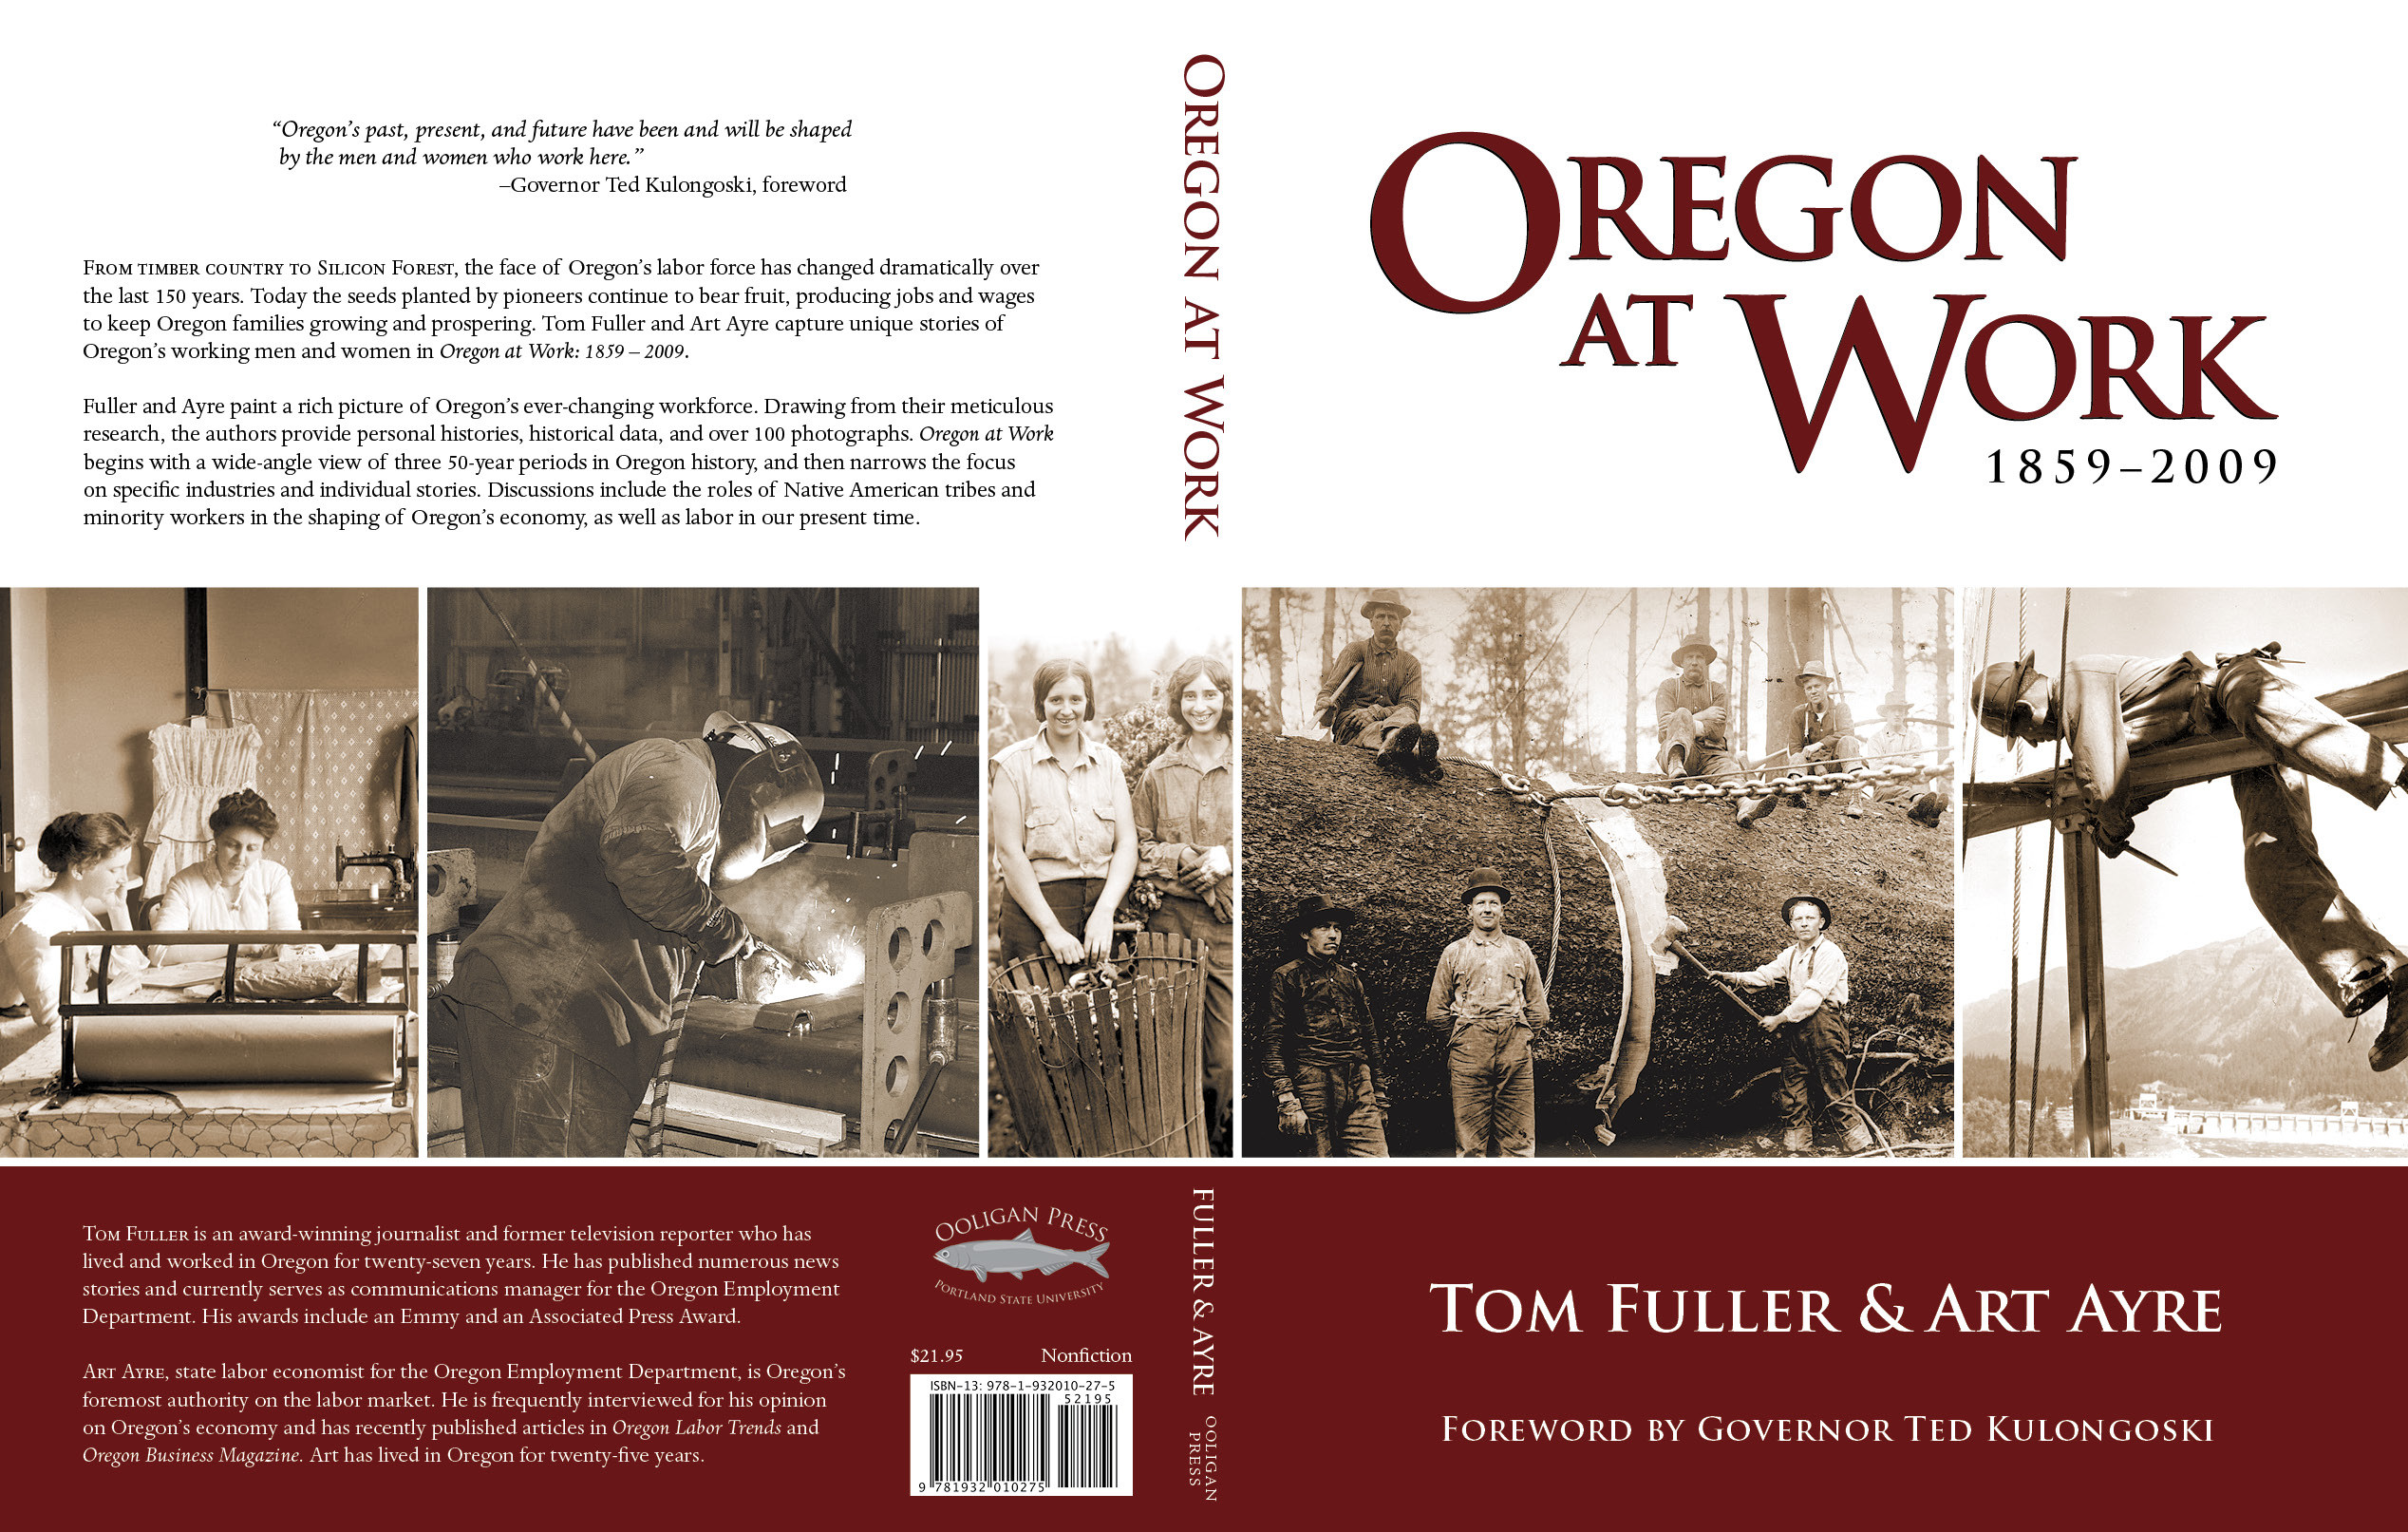 Oregon At Work: 1859–2009 jacket